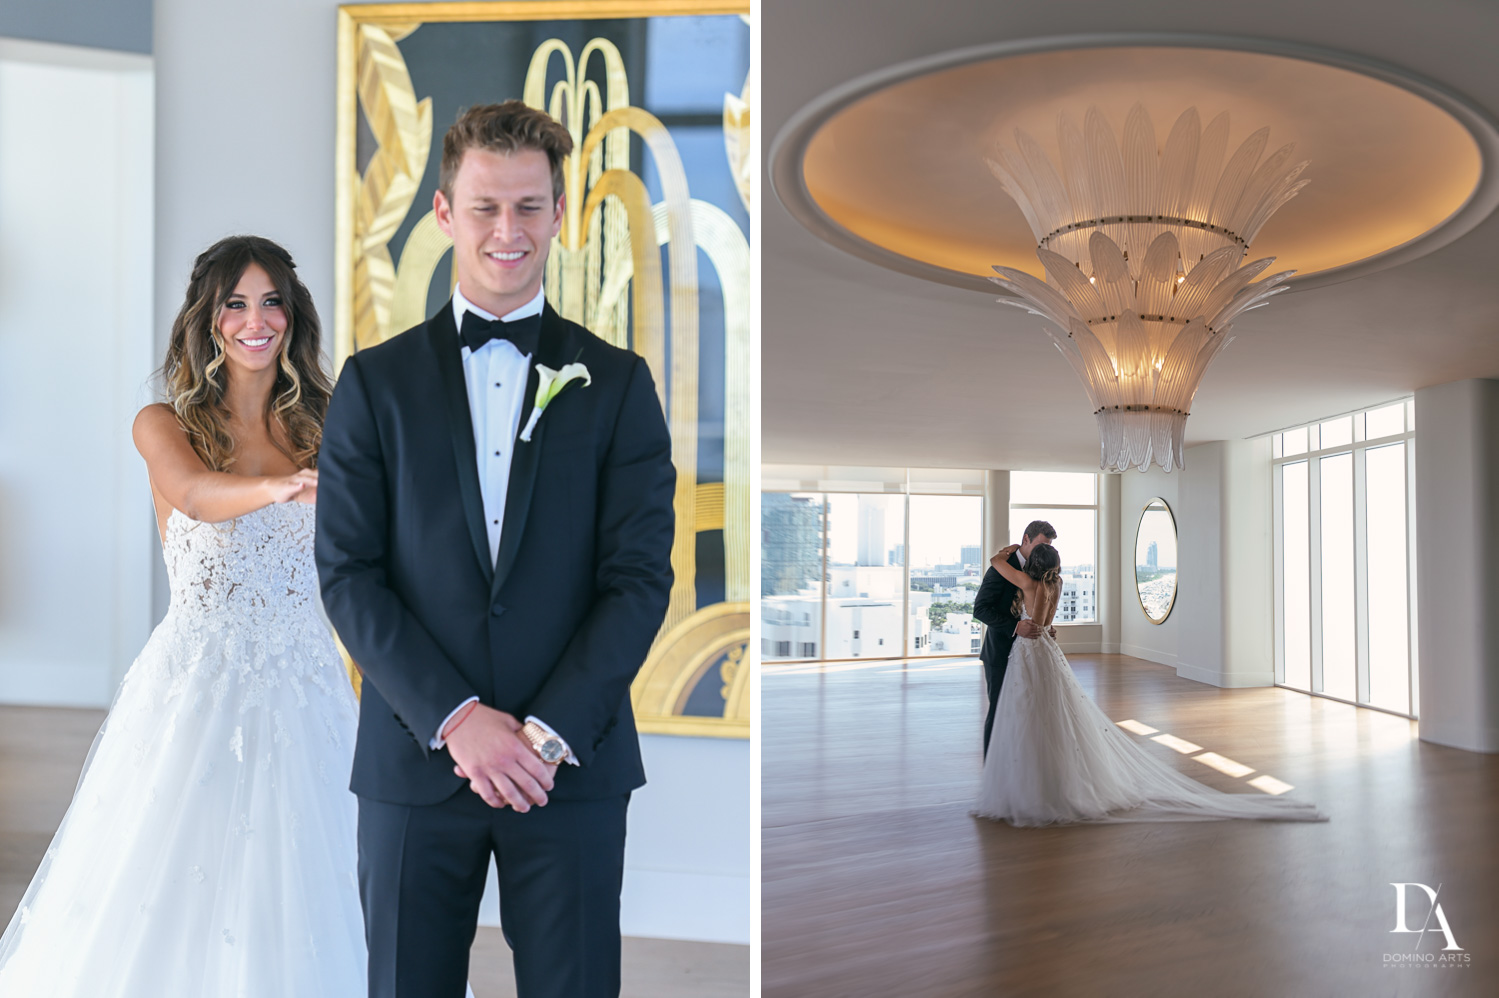 First look of bride and groom pictures at Faena Hotel Miami Beach